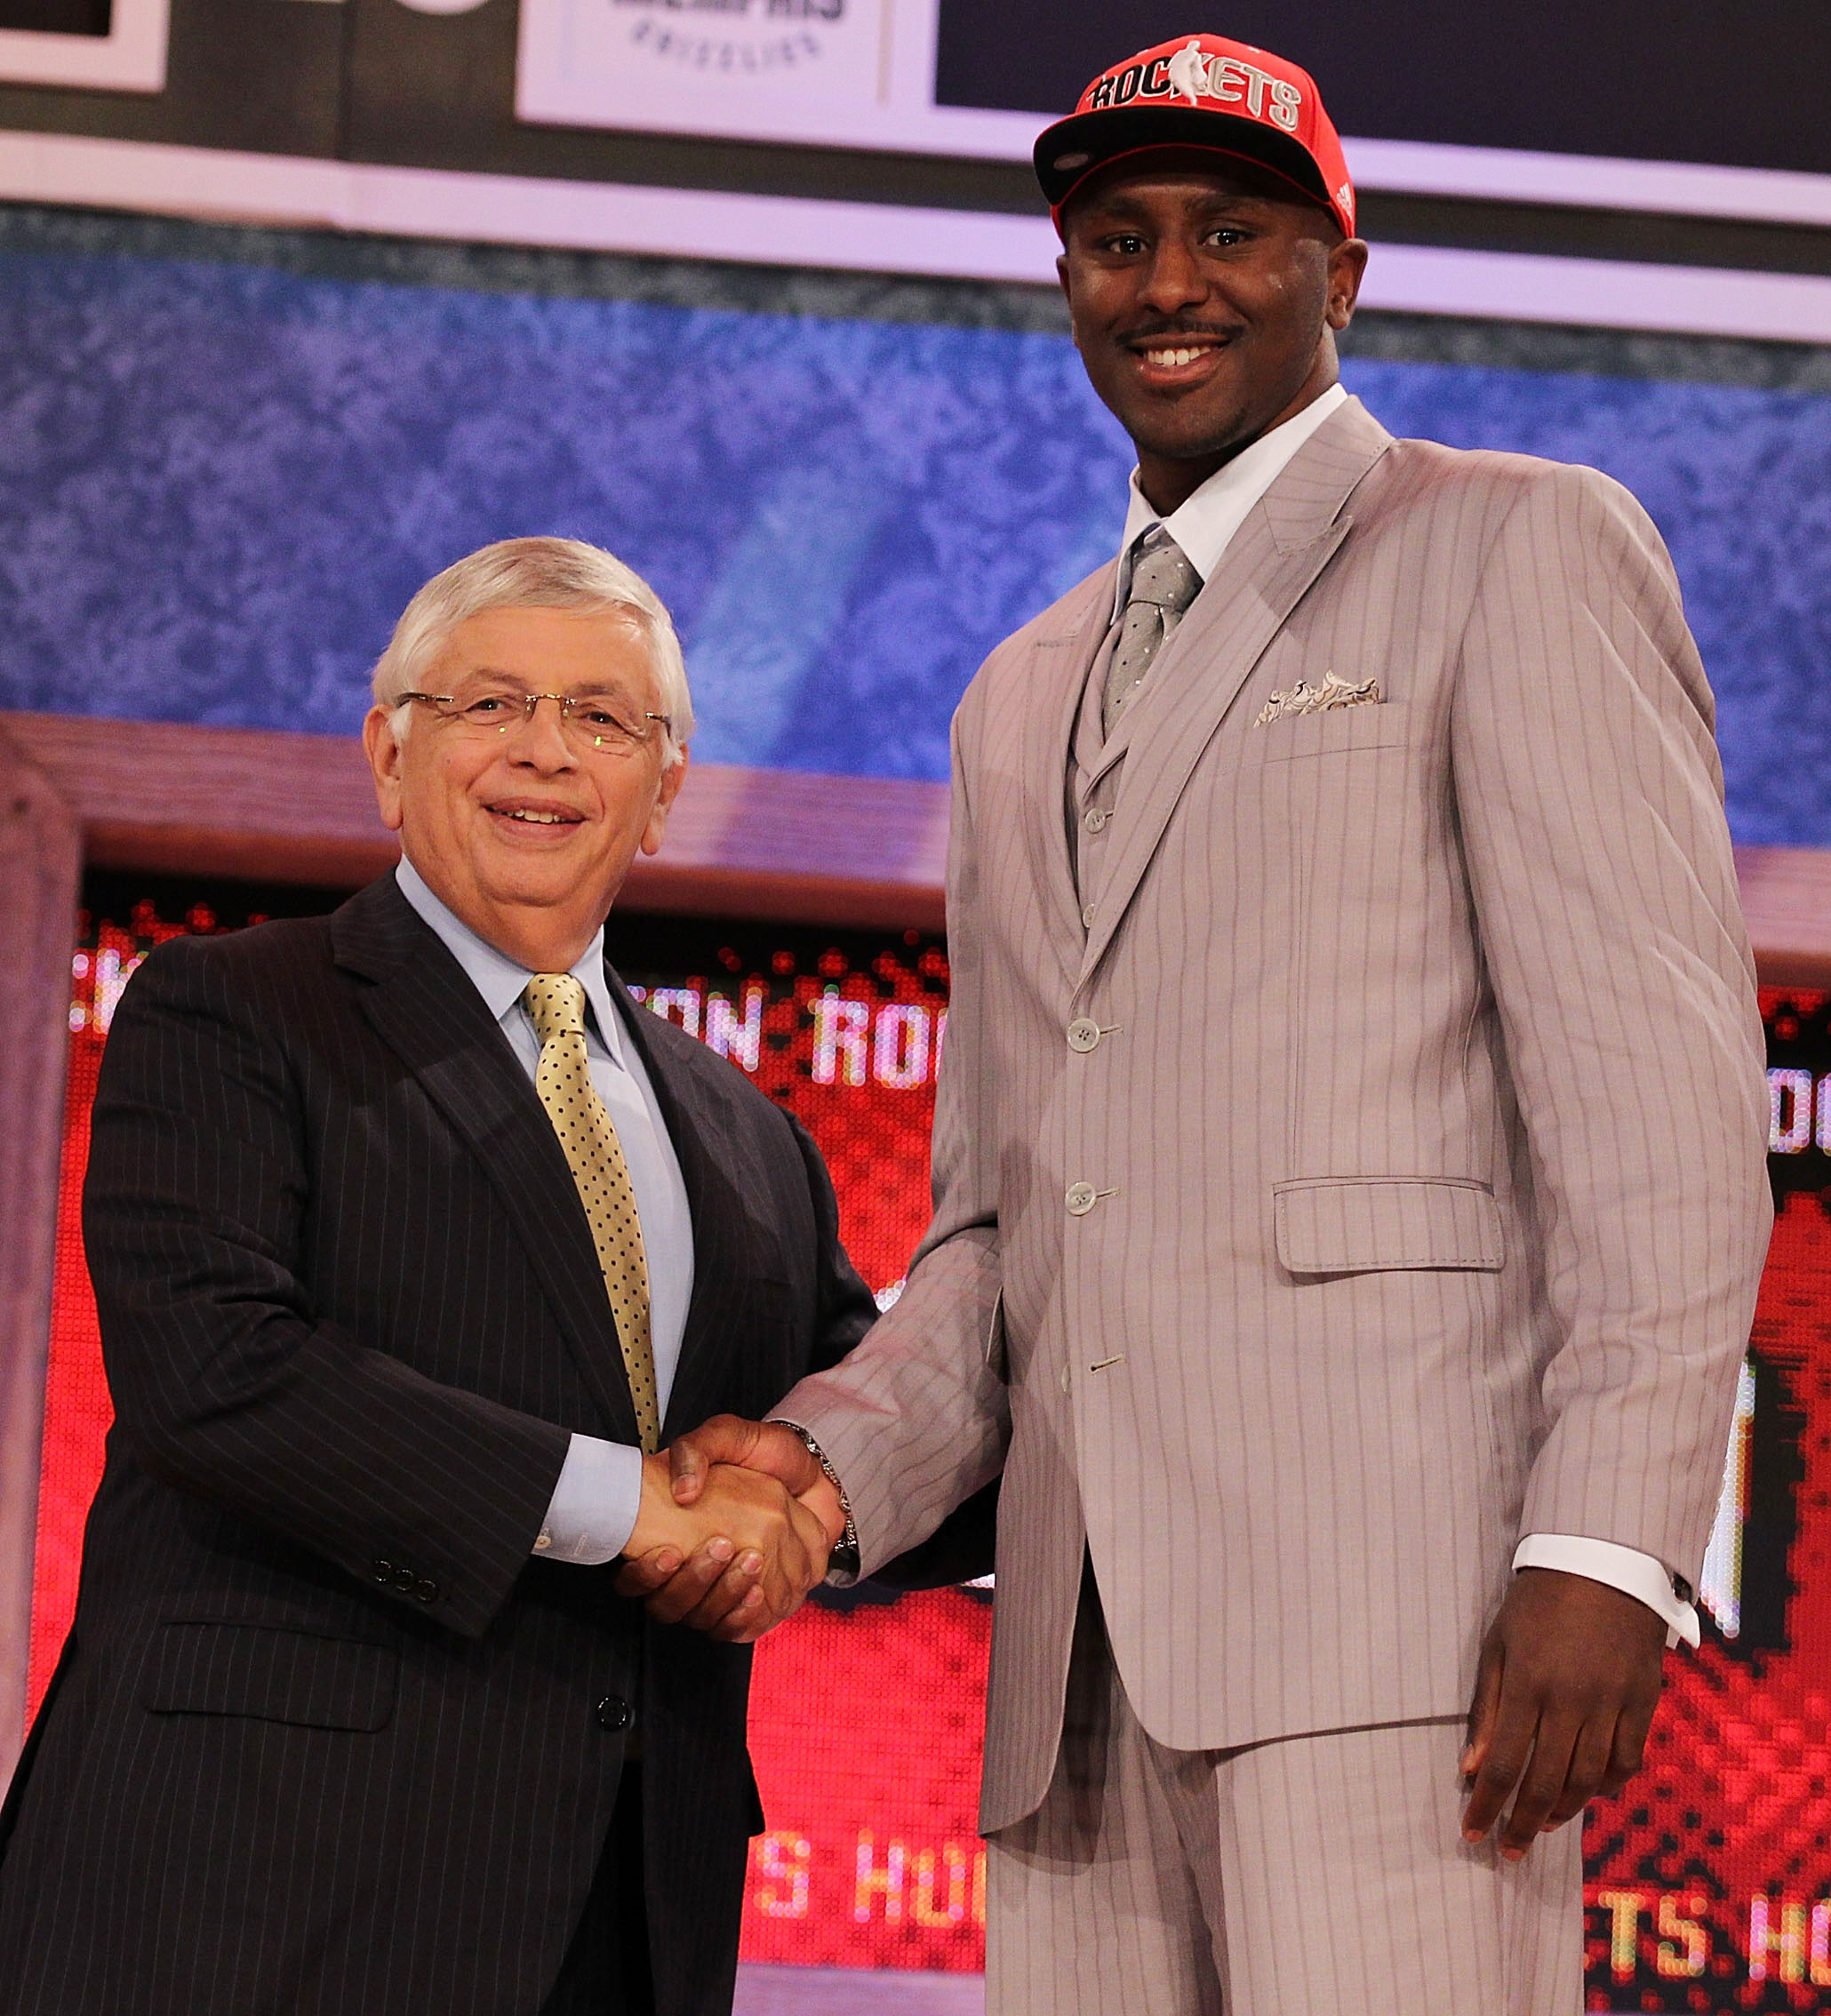 NEW YORK - JUNE 24:  Patrick Patterson stands with NBA Commisioner David Stern after being drafted fourteenth by The Houston Rockets  at Madison Square Garden on June 24, 2010 in New York City.  NOTE TO USER: User expressly acknowledges and agrees that, b